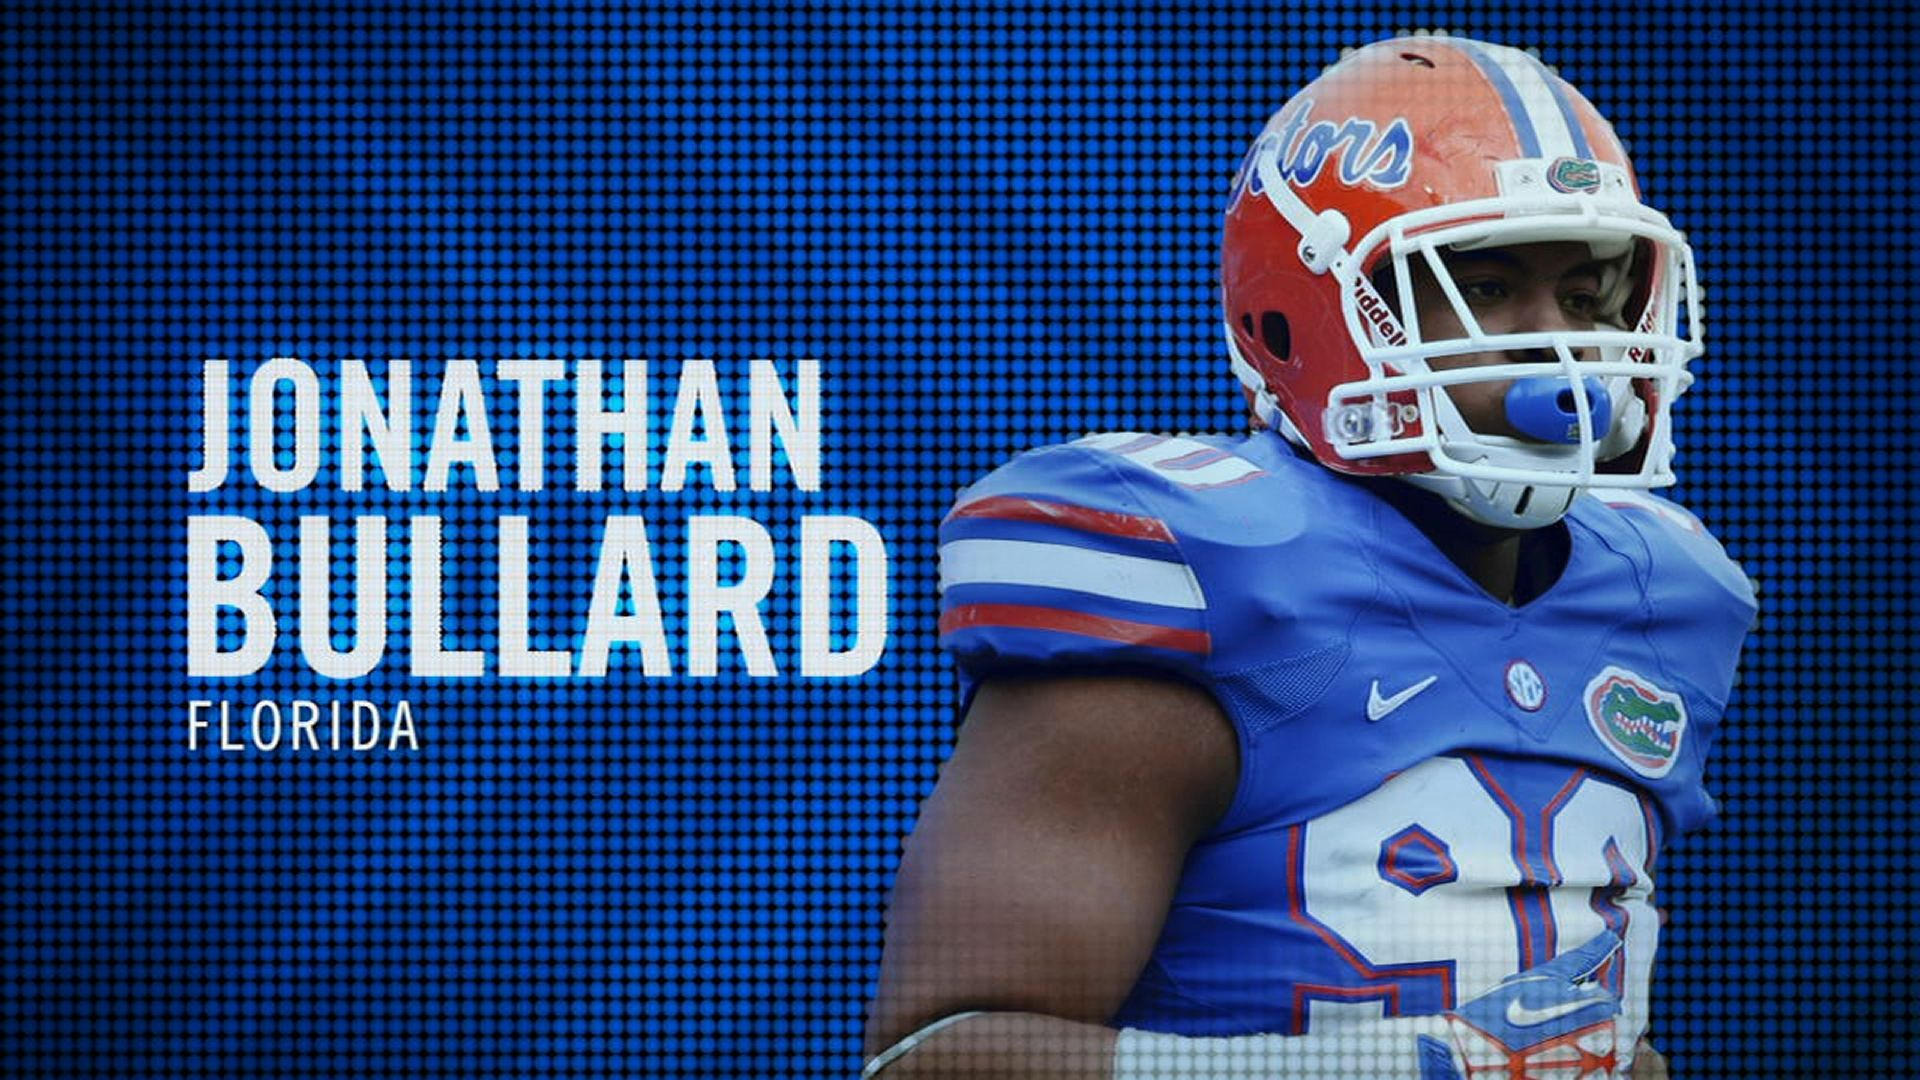 I am the SEC: Florida's Jonathan Bullard